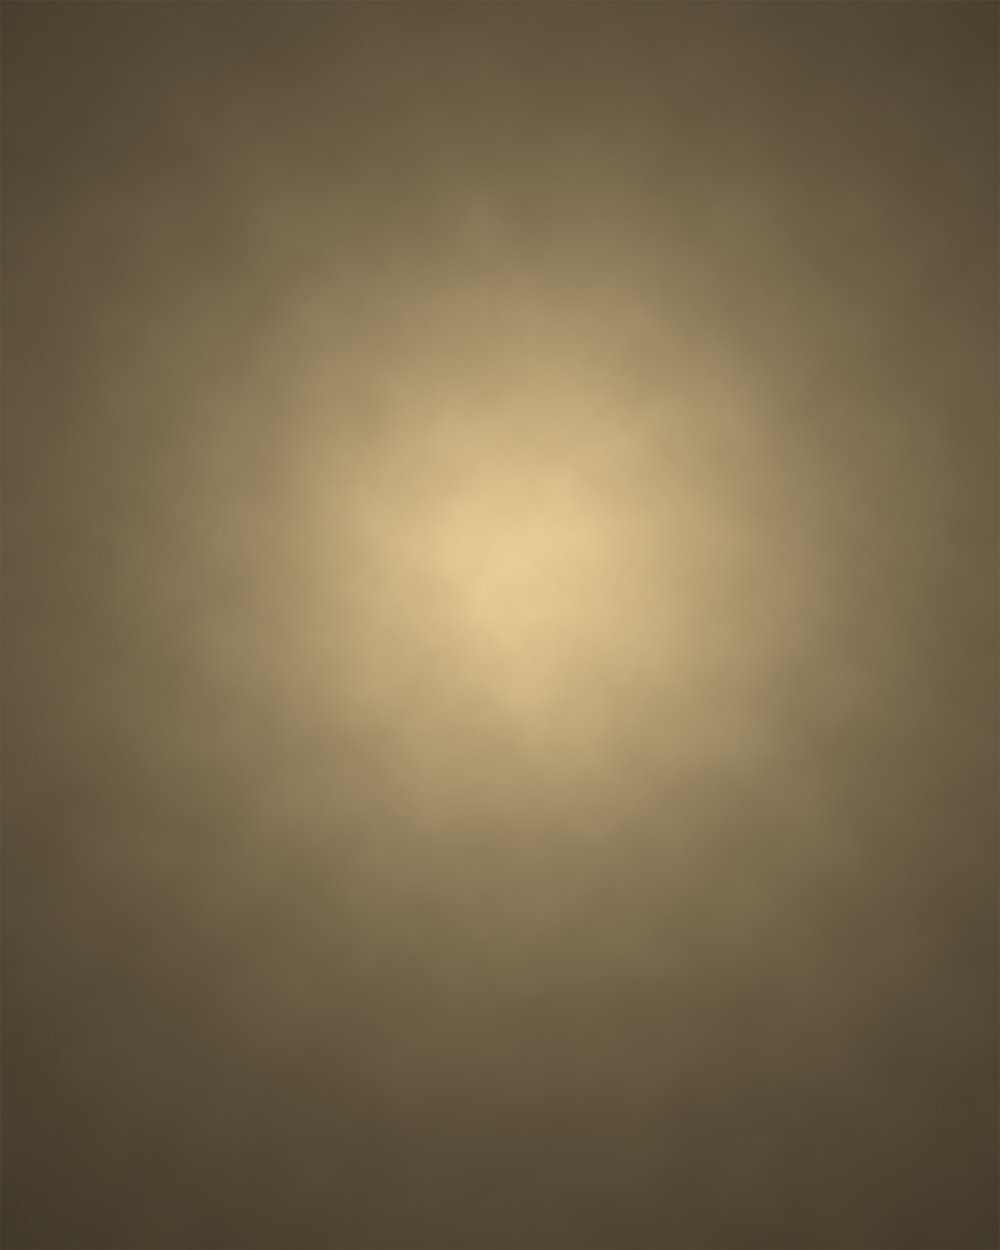 Background Option #9 - Gold/Tan